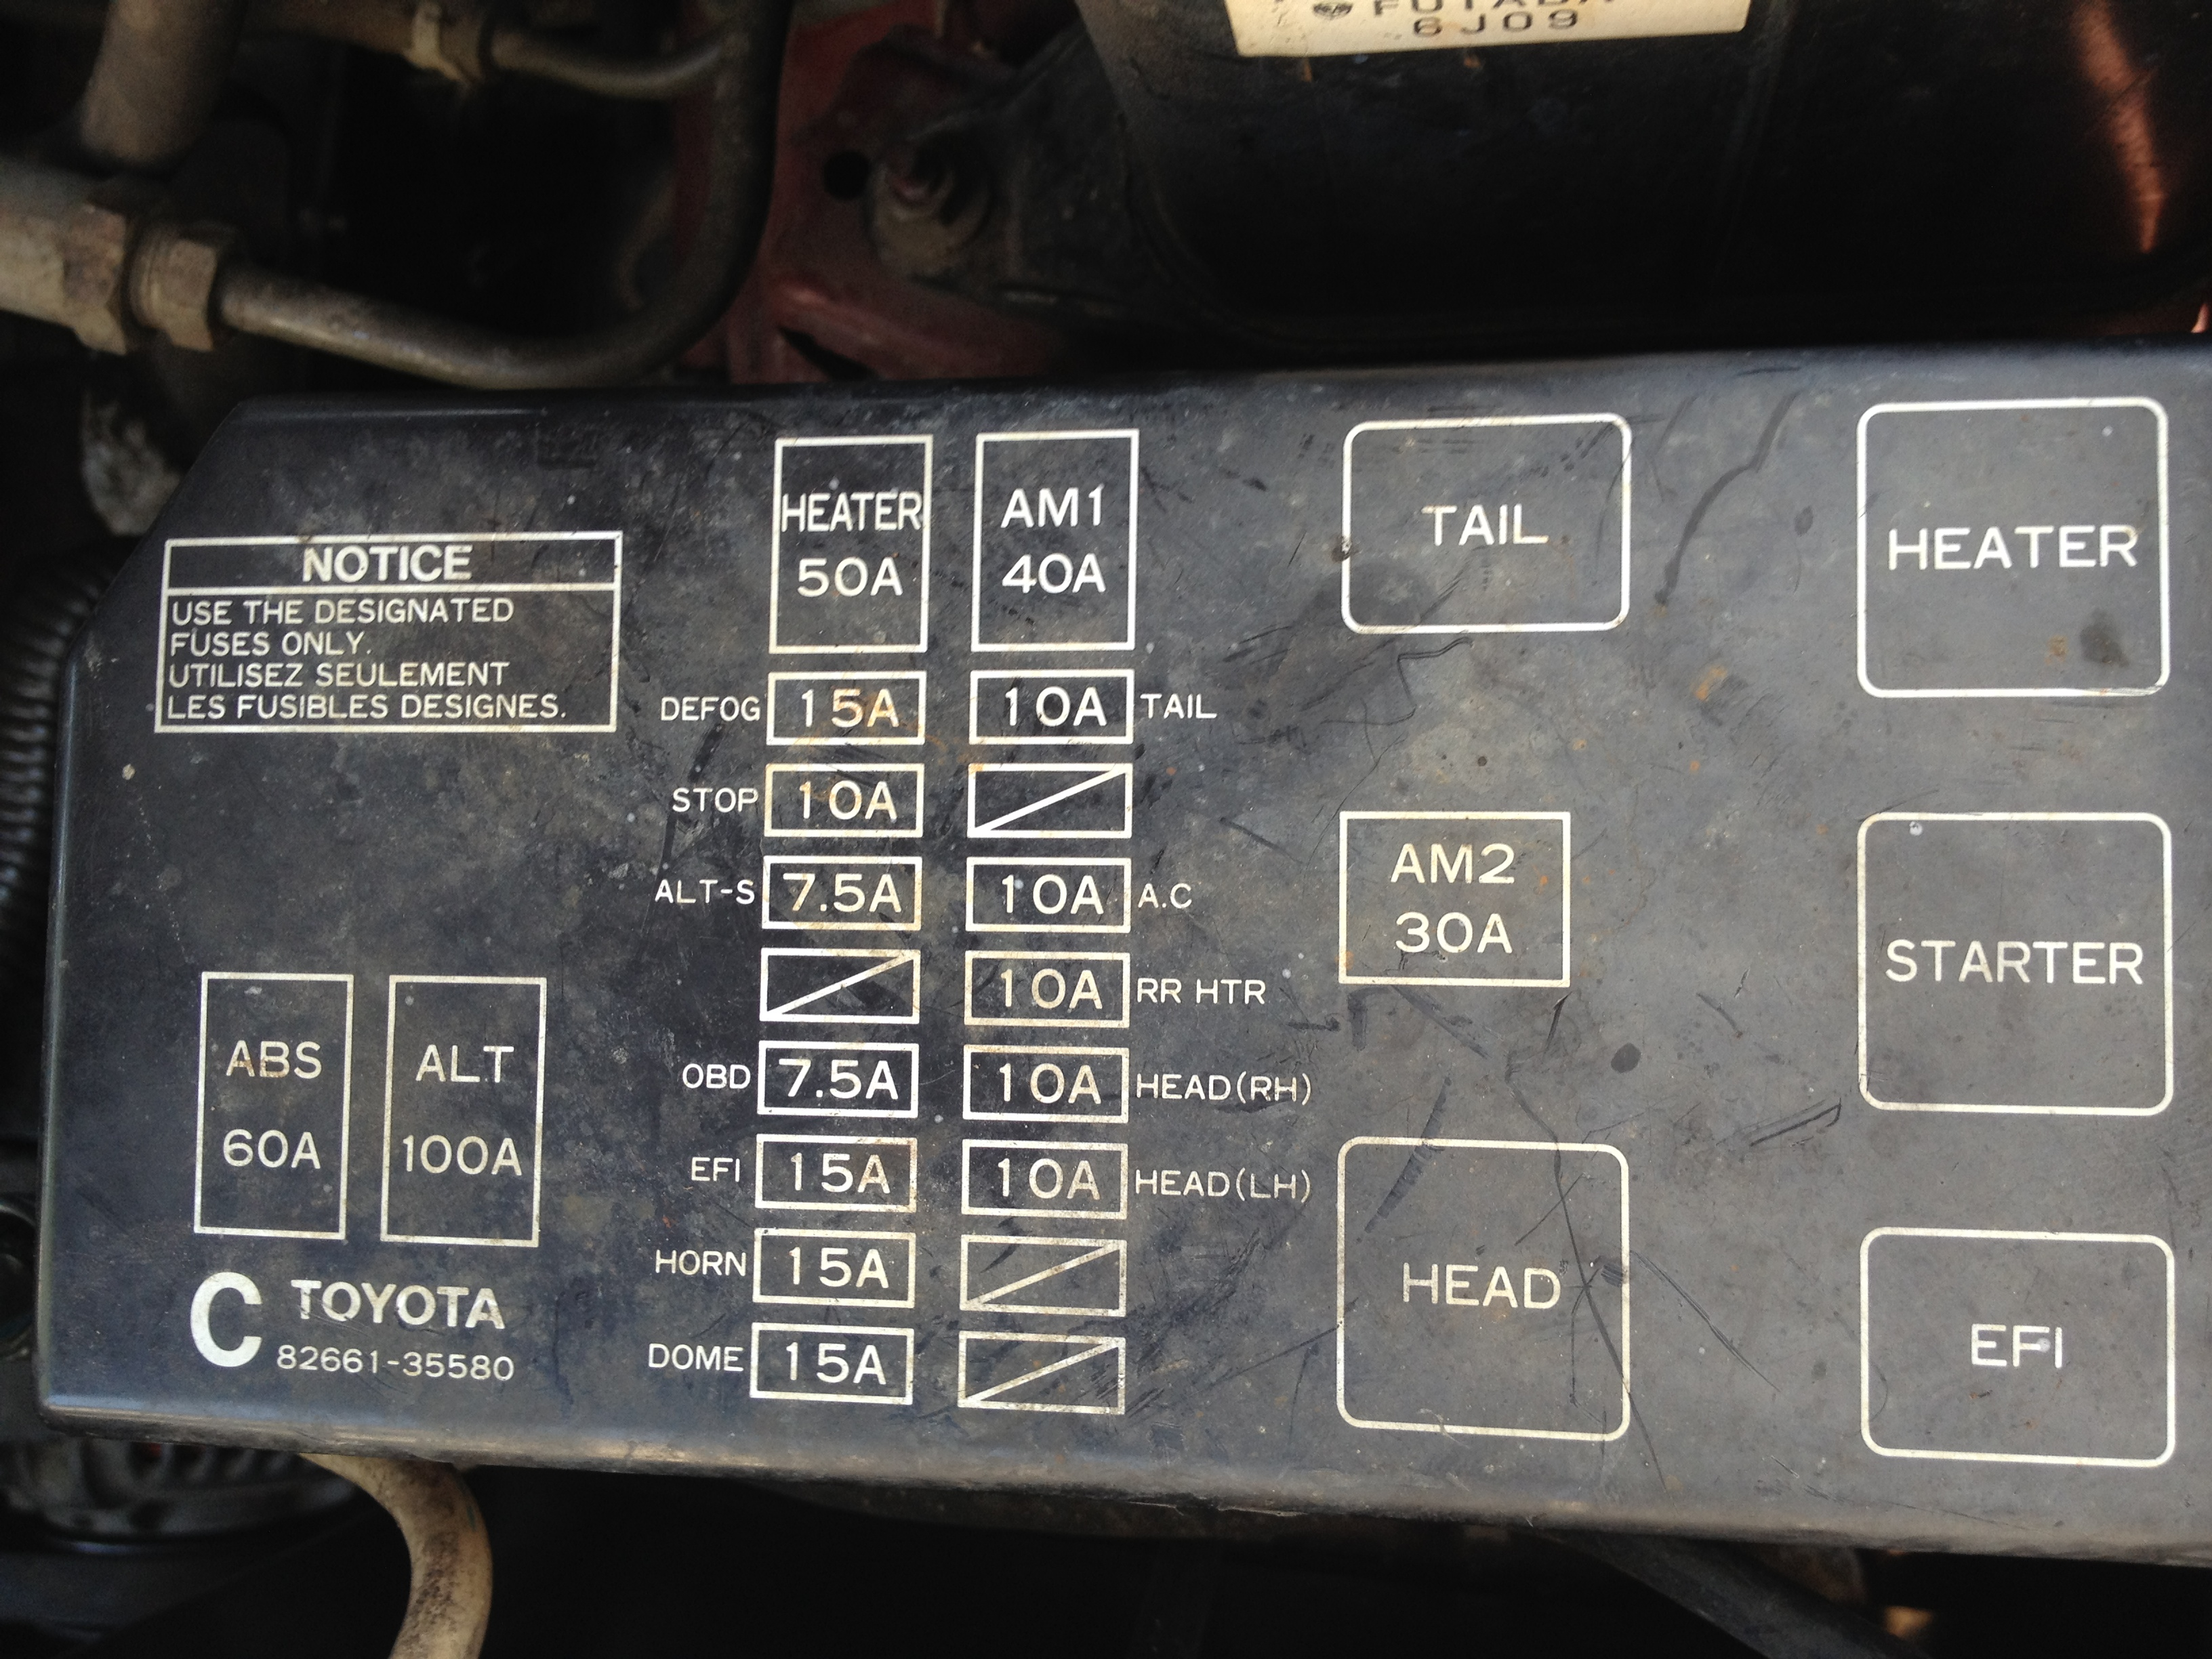 fuse box 1997 toyota 4runner diagram fuse box 1997 range rover toyota 4runner sr5: my husband bought a 1997 toyota 4runner